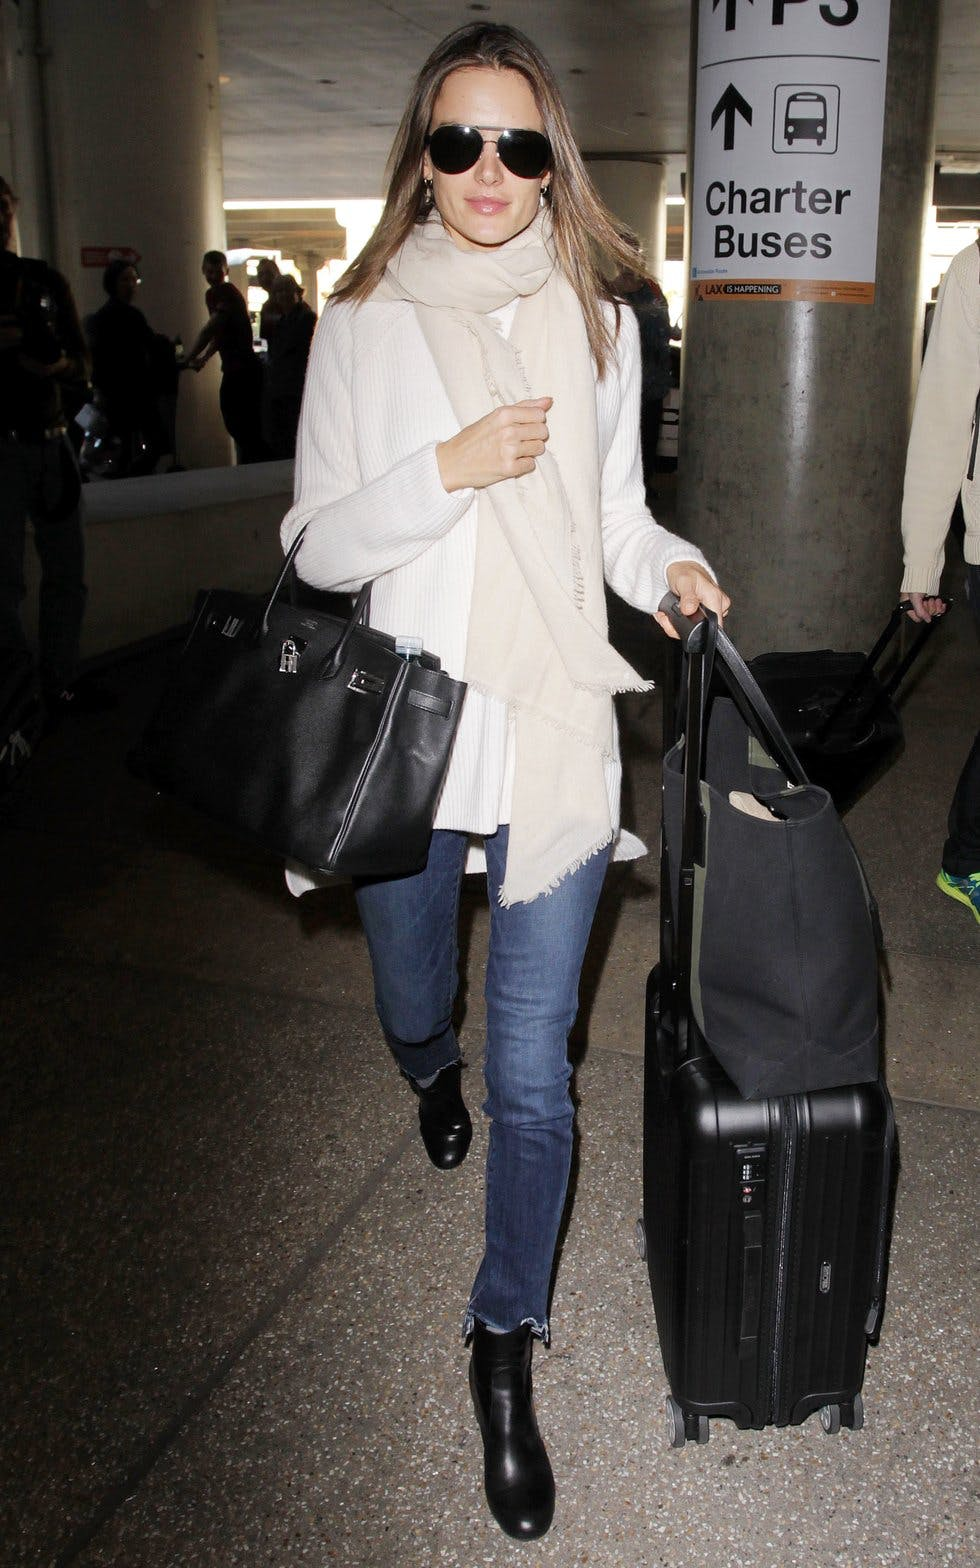 a894fa1efa9 A soft knit in winter white layered with a cream scarf makes for a  luxuriously chic look. Black accessories pop against the soft tones and  frayed denim adds ...